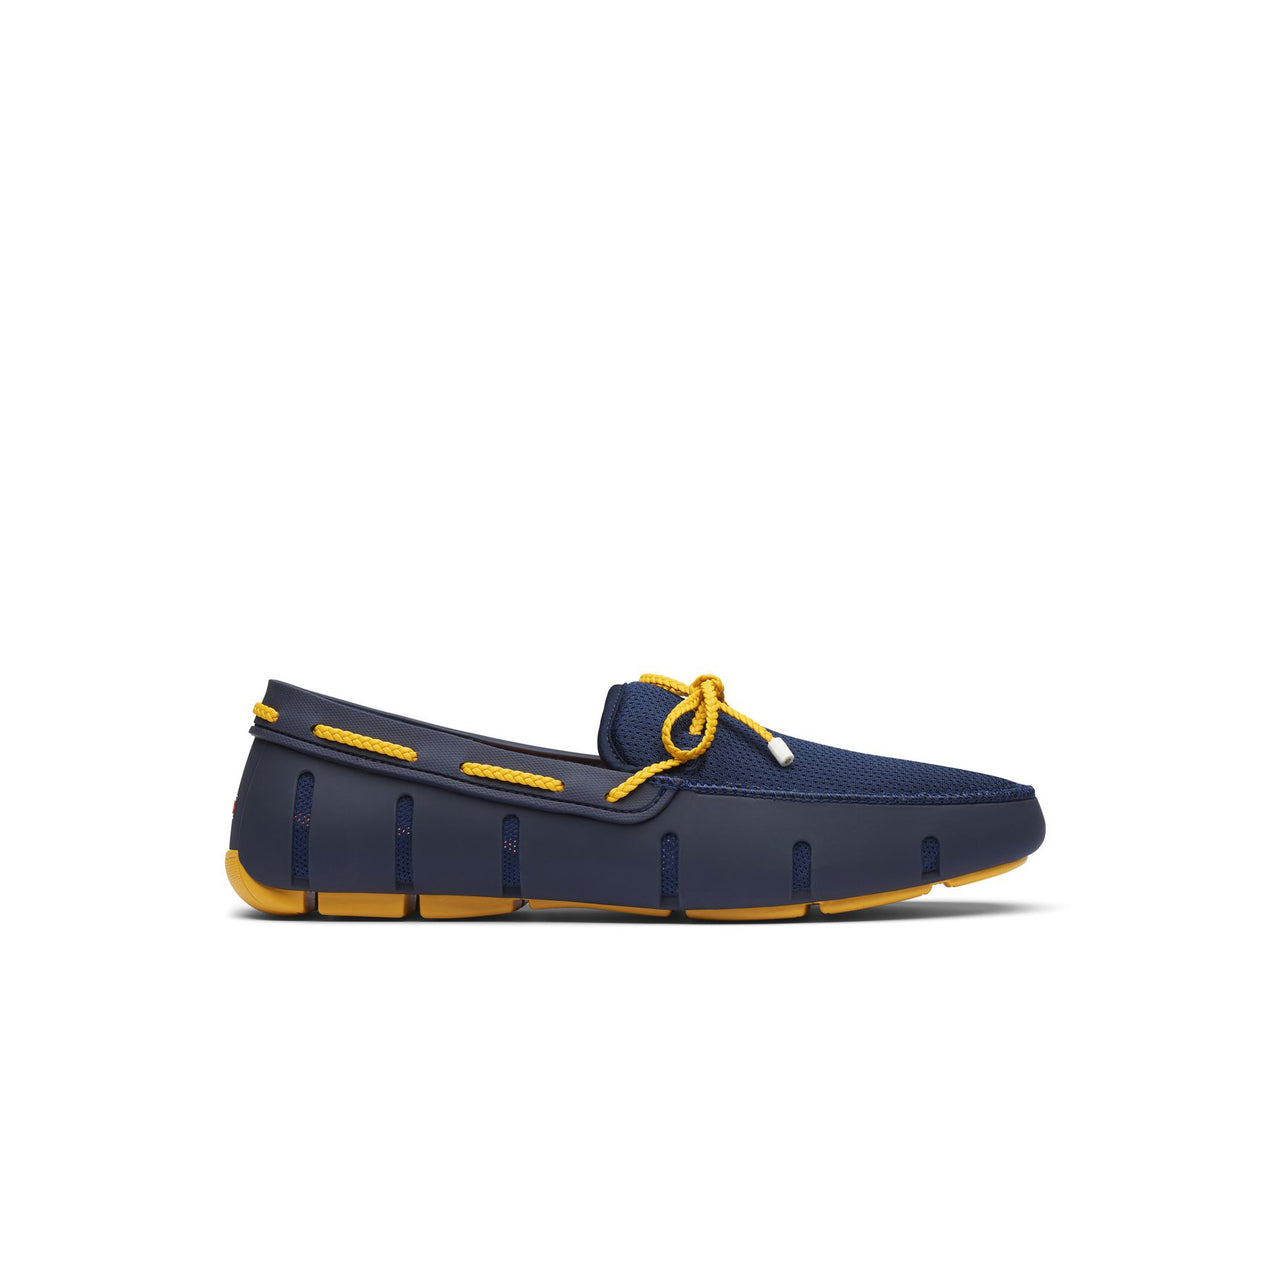 Swims Men's Braided Lace Loafer In Navy-Gold Fusion